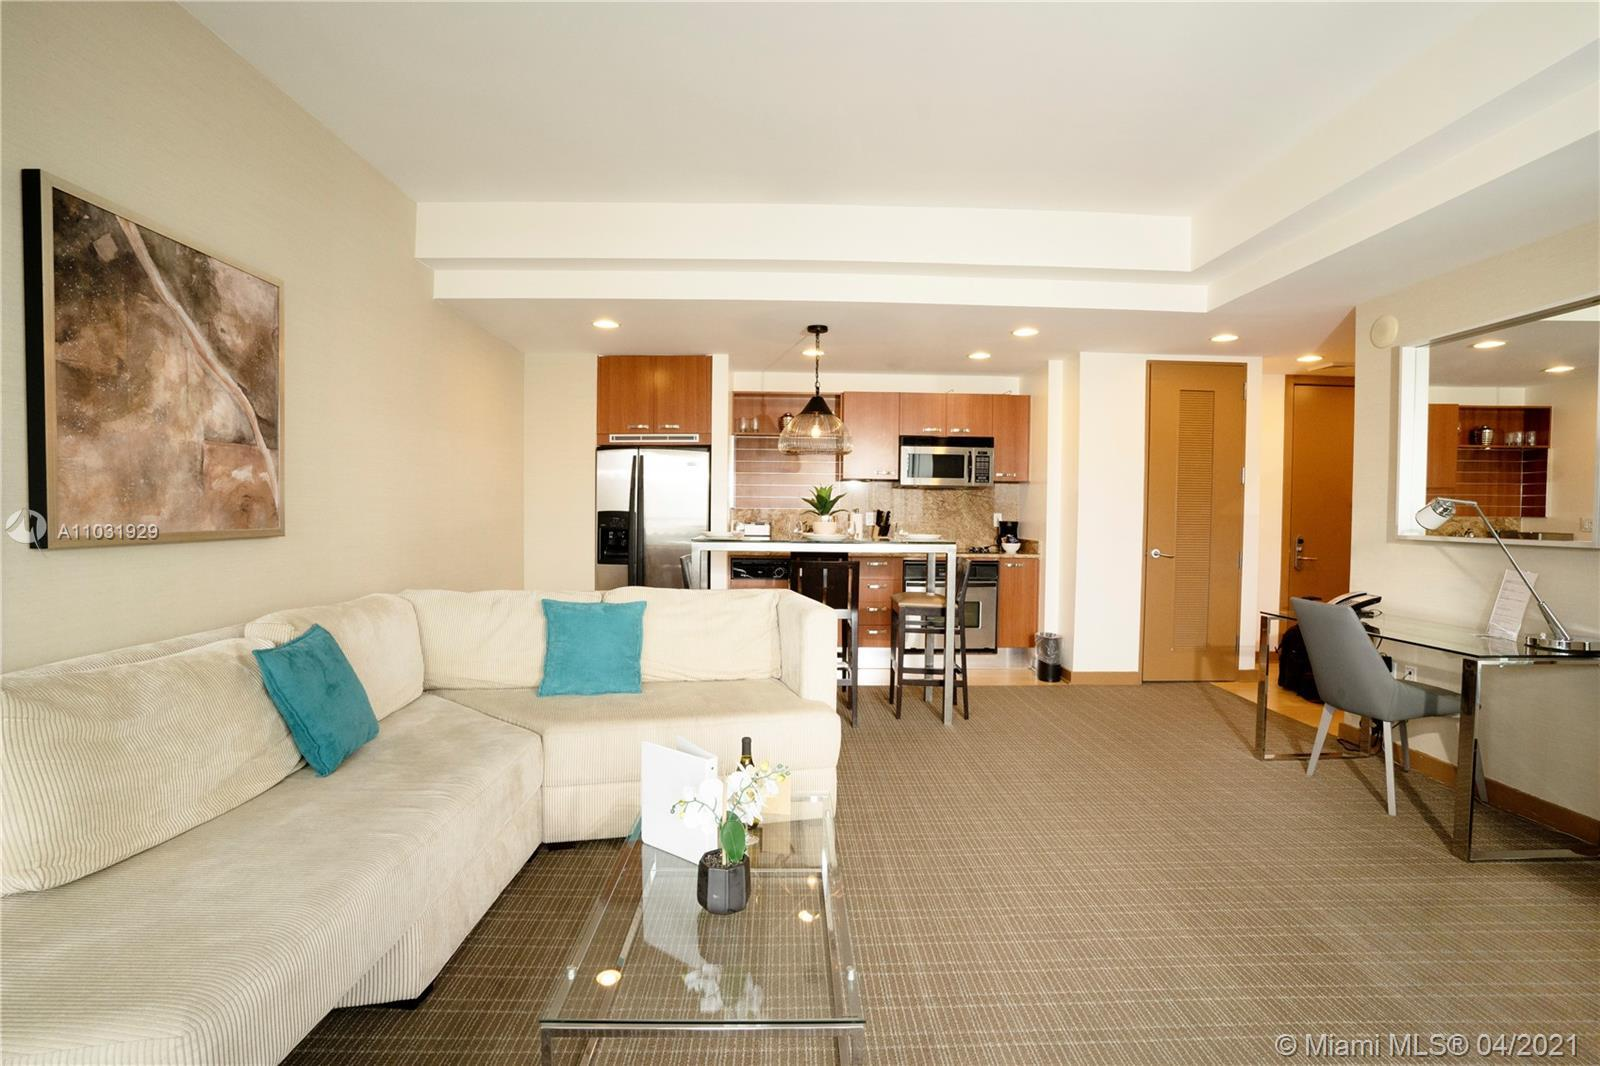 Conrad Miami Residences 1 Bedroom and 1.5 baths with breathtaking views Brickell Skyline and Port of